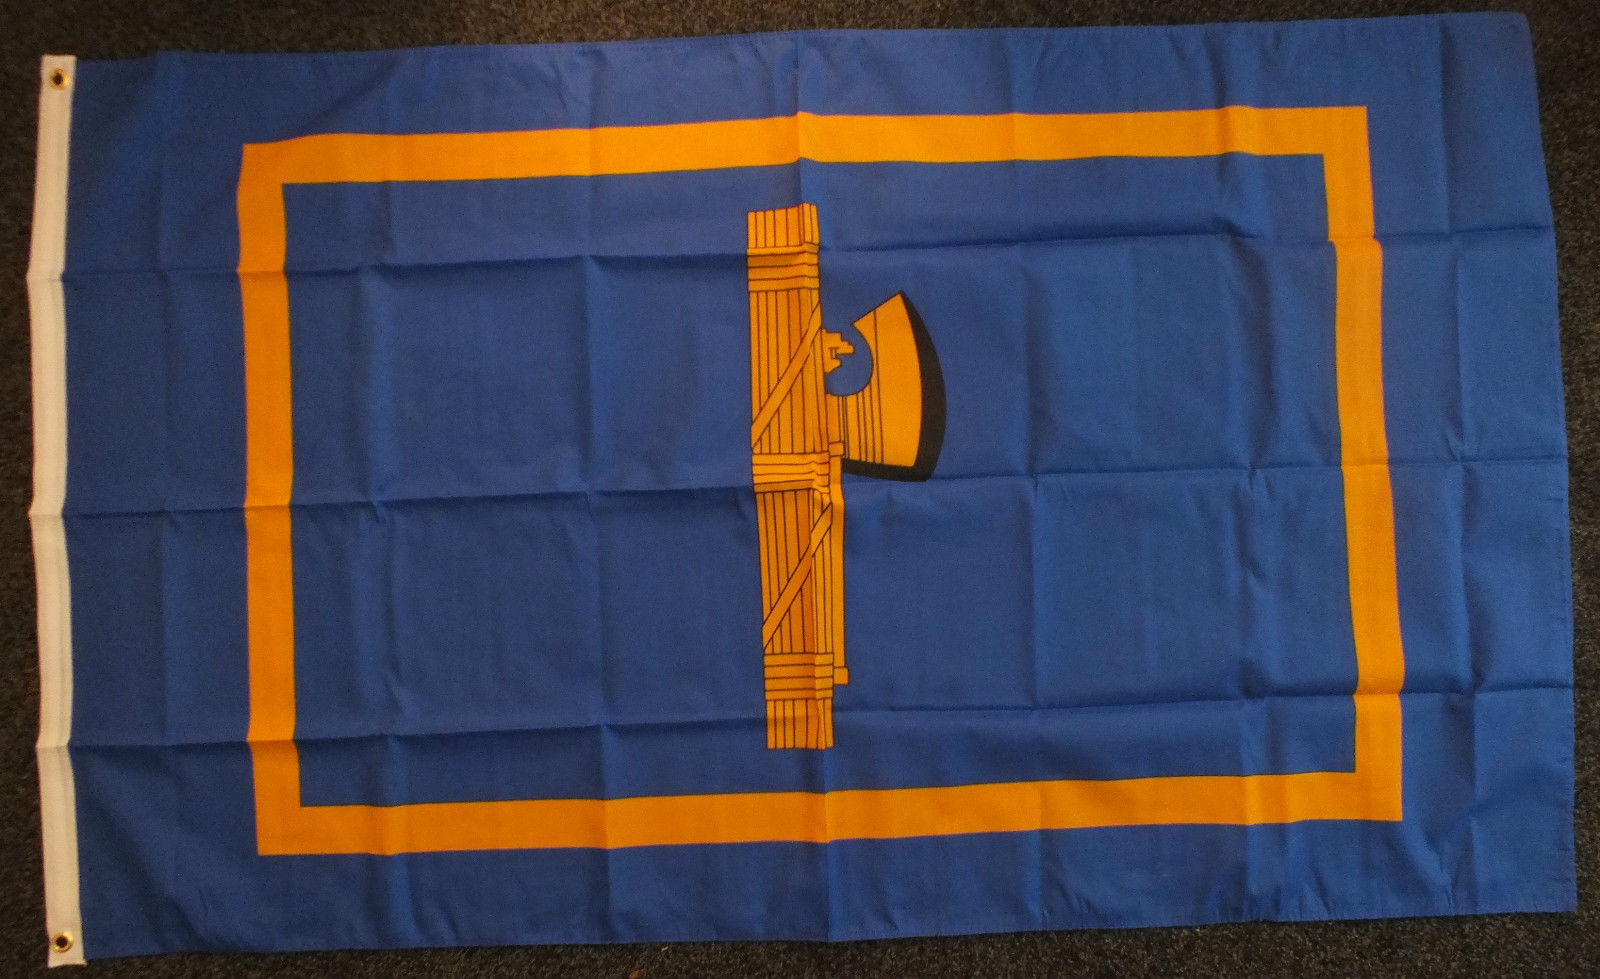 4 49 Gbp Italian Ww2 Fascisti Flag Italy Benito Mussolini 1922 1943 Military Rsi History Ebay Collectibles Products Military Ebay Ww2